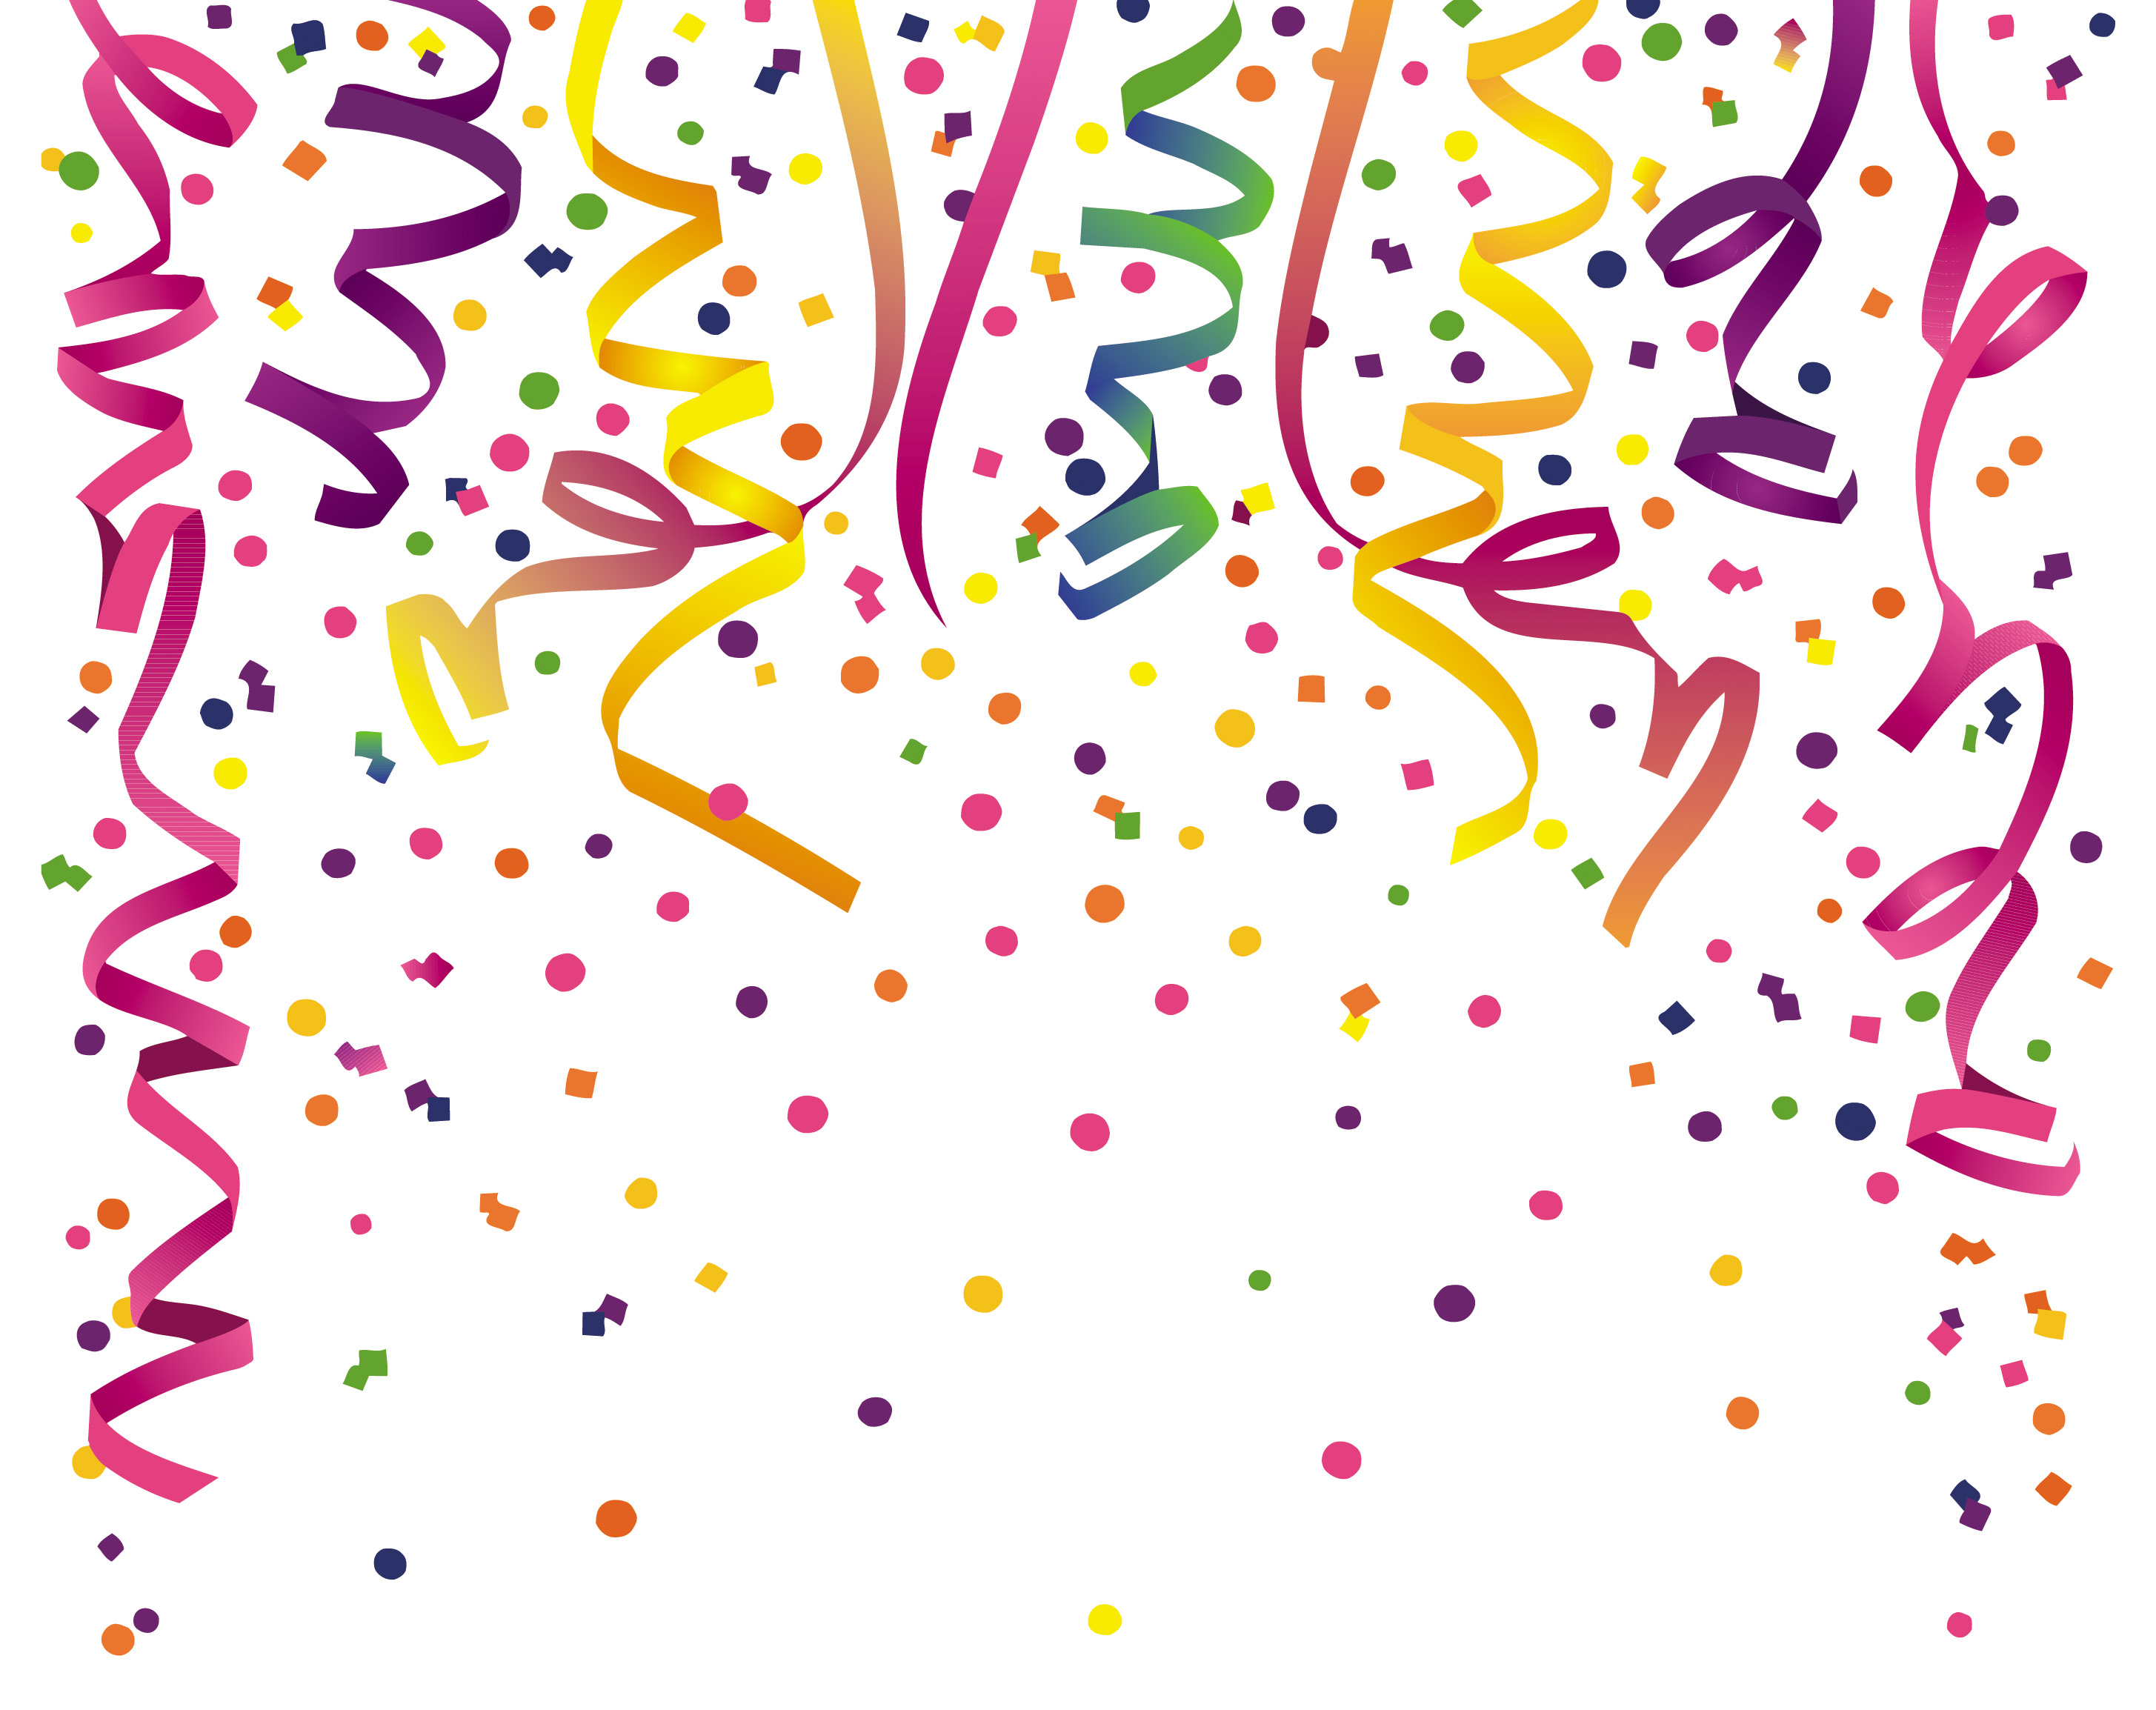 Free Png Download Vector Confetti